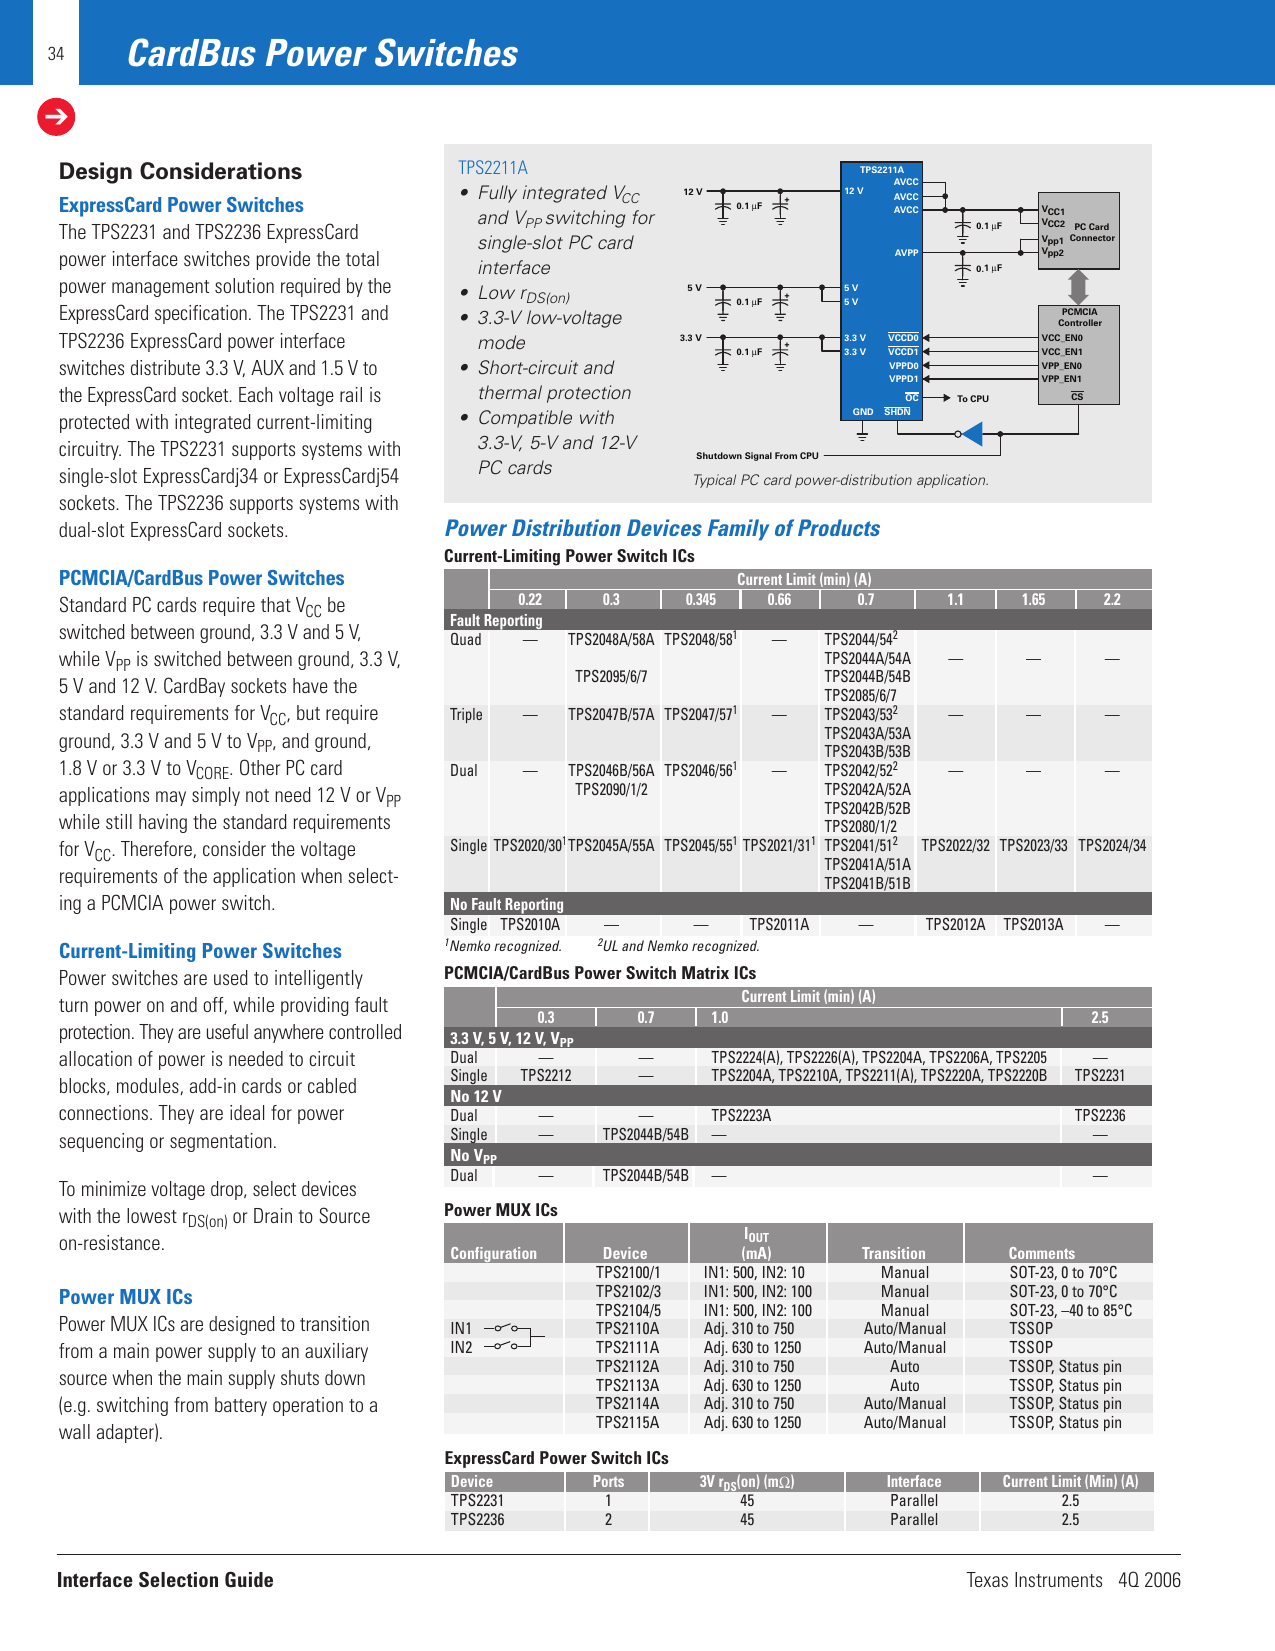 Texas Instruments Technology For Innovators 4Q 2006 Users